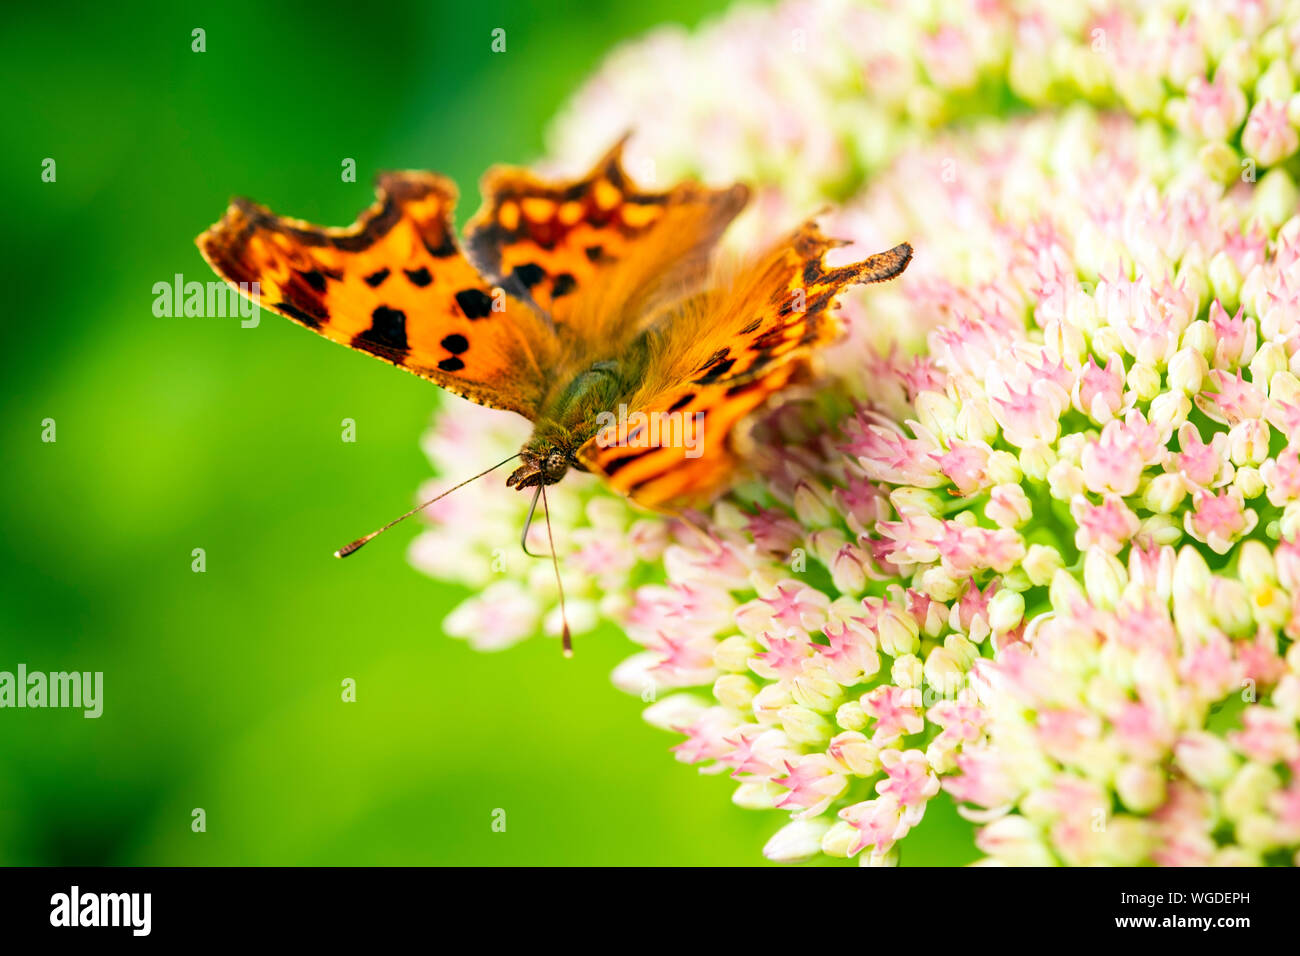 comma-butterfly-uk-feeding-on-a-sedum-flower-polygonia-c-album-with-its-tongue-probing-flowers-WGDEPH.jpg